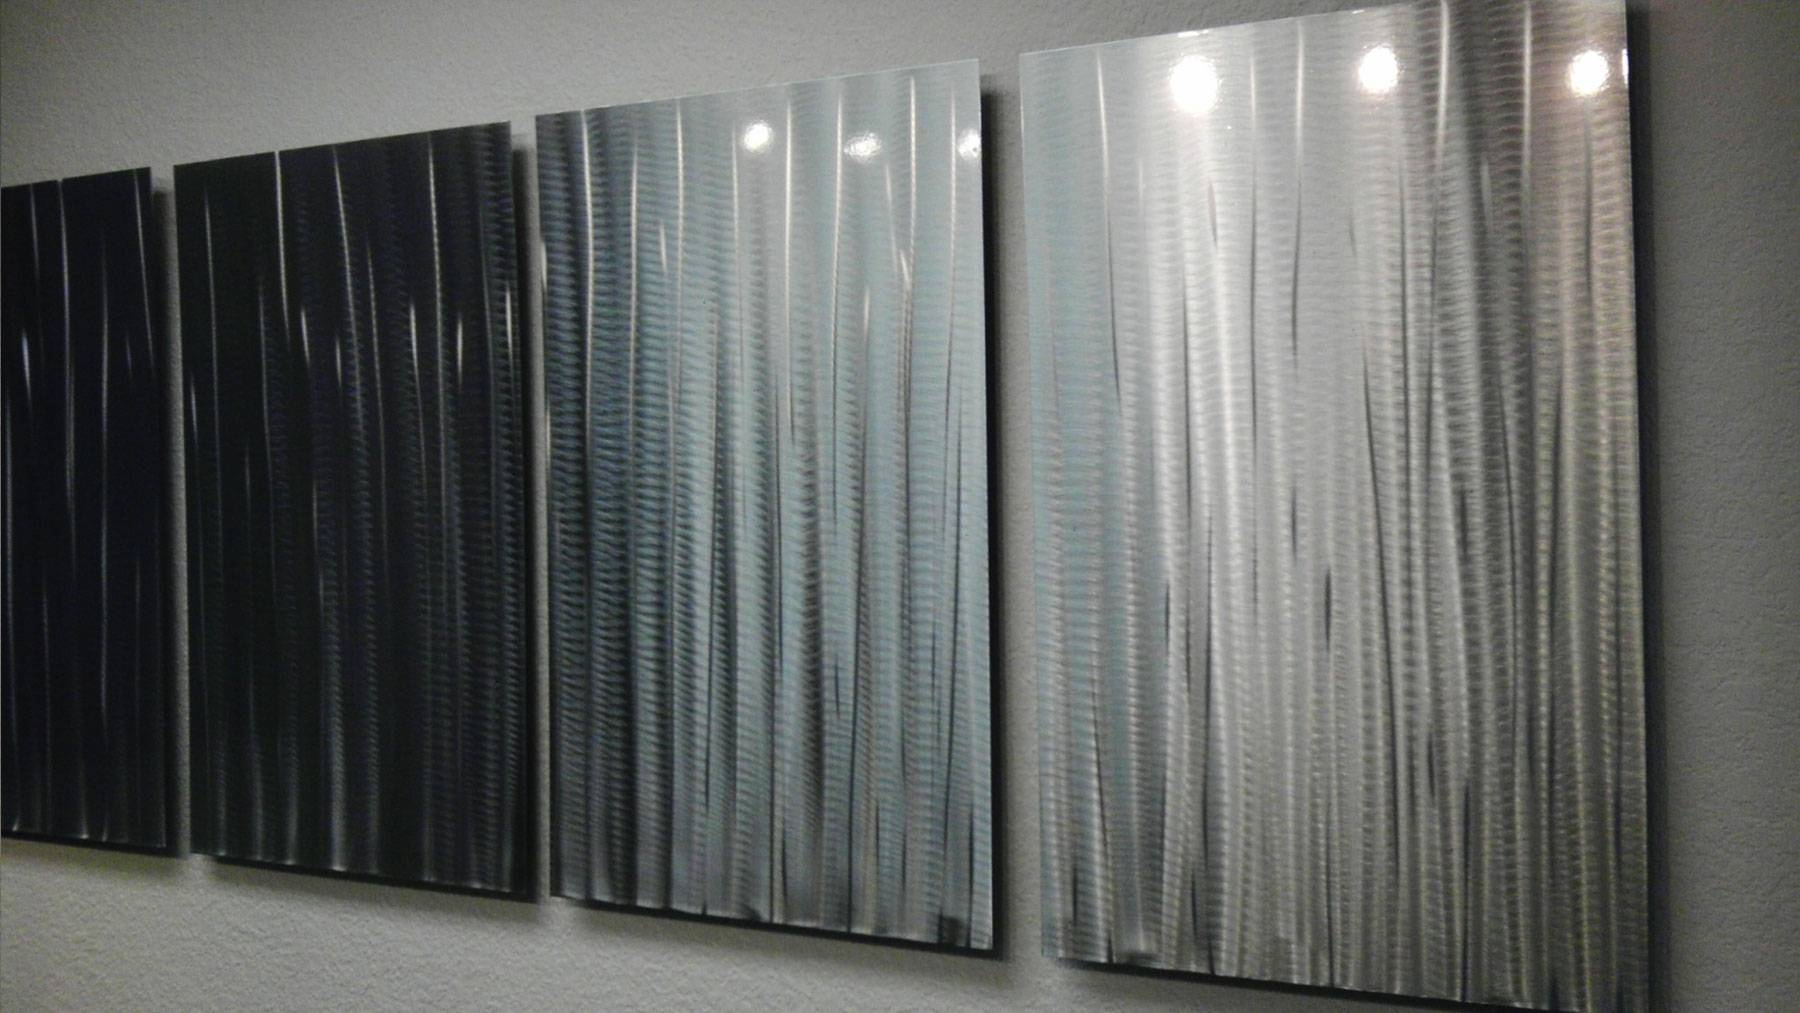 Bamboo Forest – Abstract Metal Wall Art Contemporary Modern Decor Within Most Recent Bamboo Metal Wall Art (View 11 of 25)